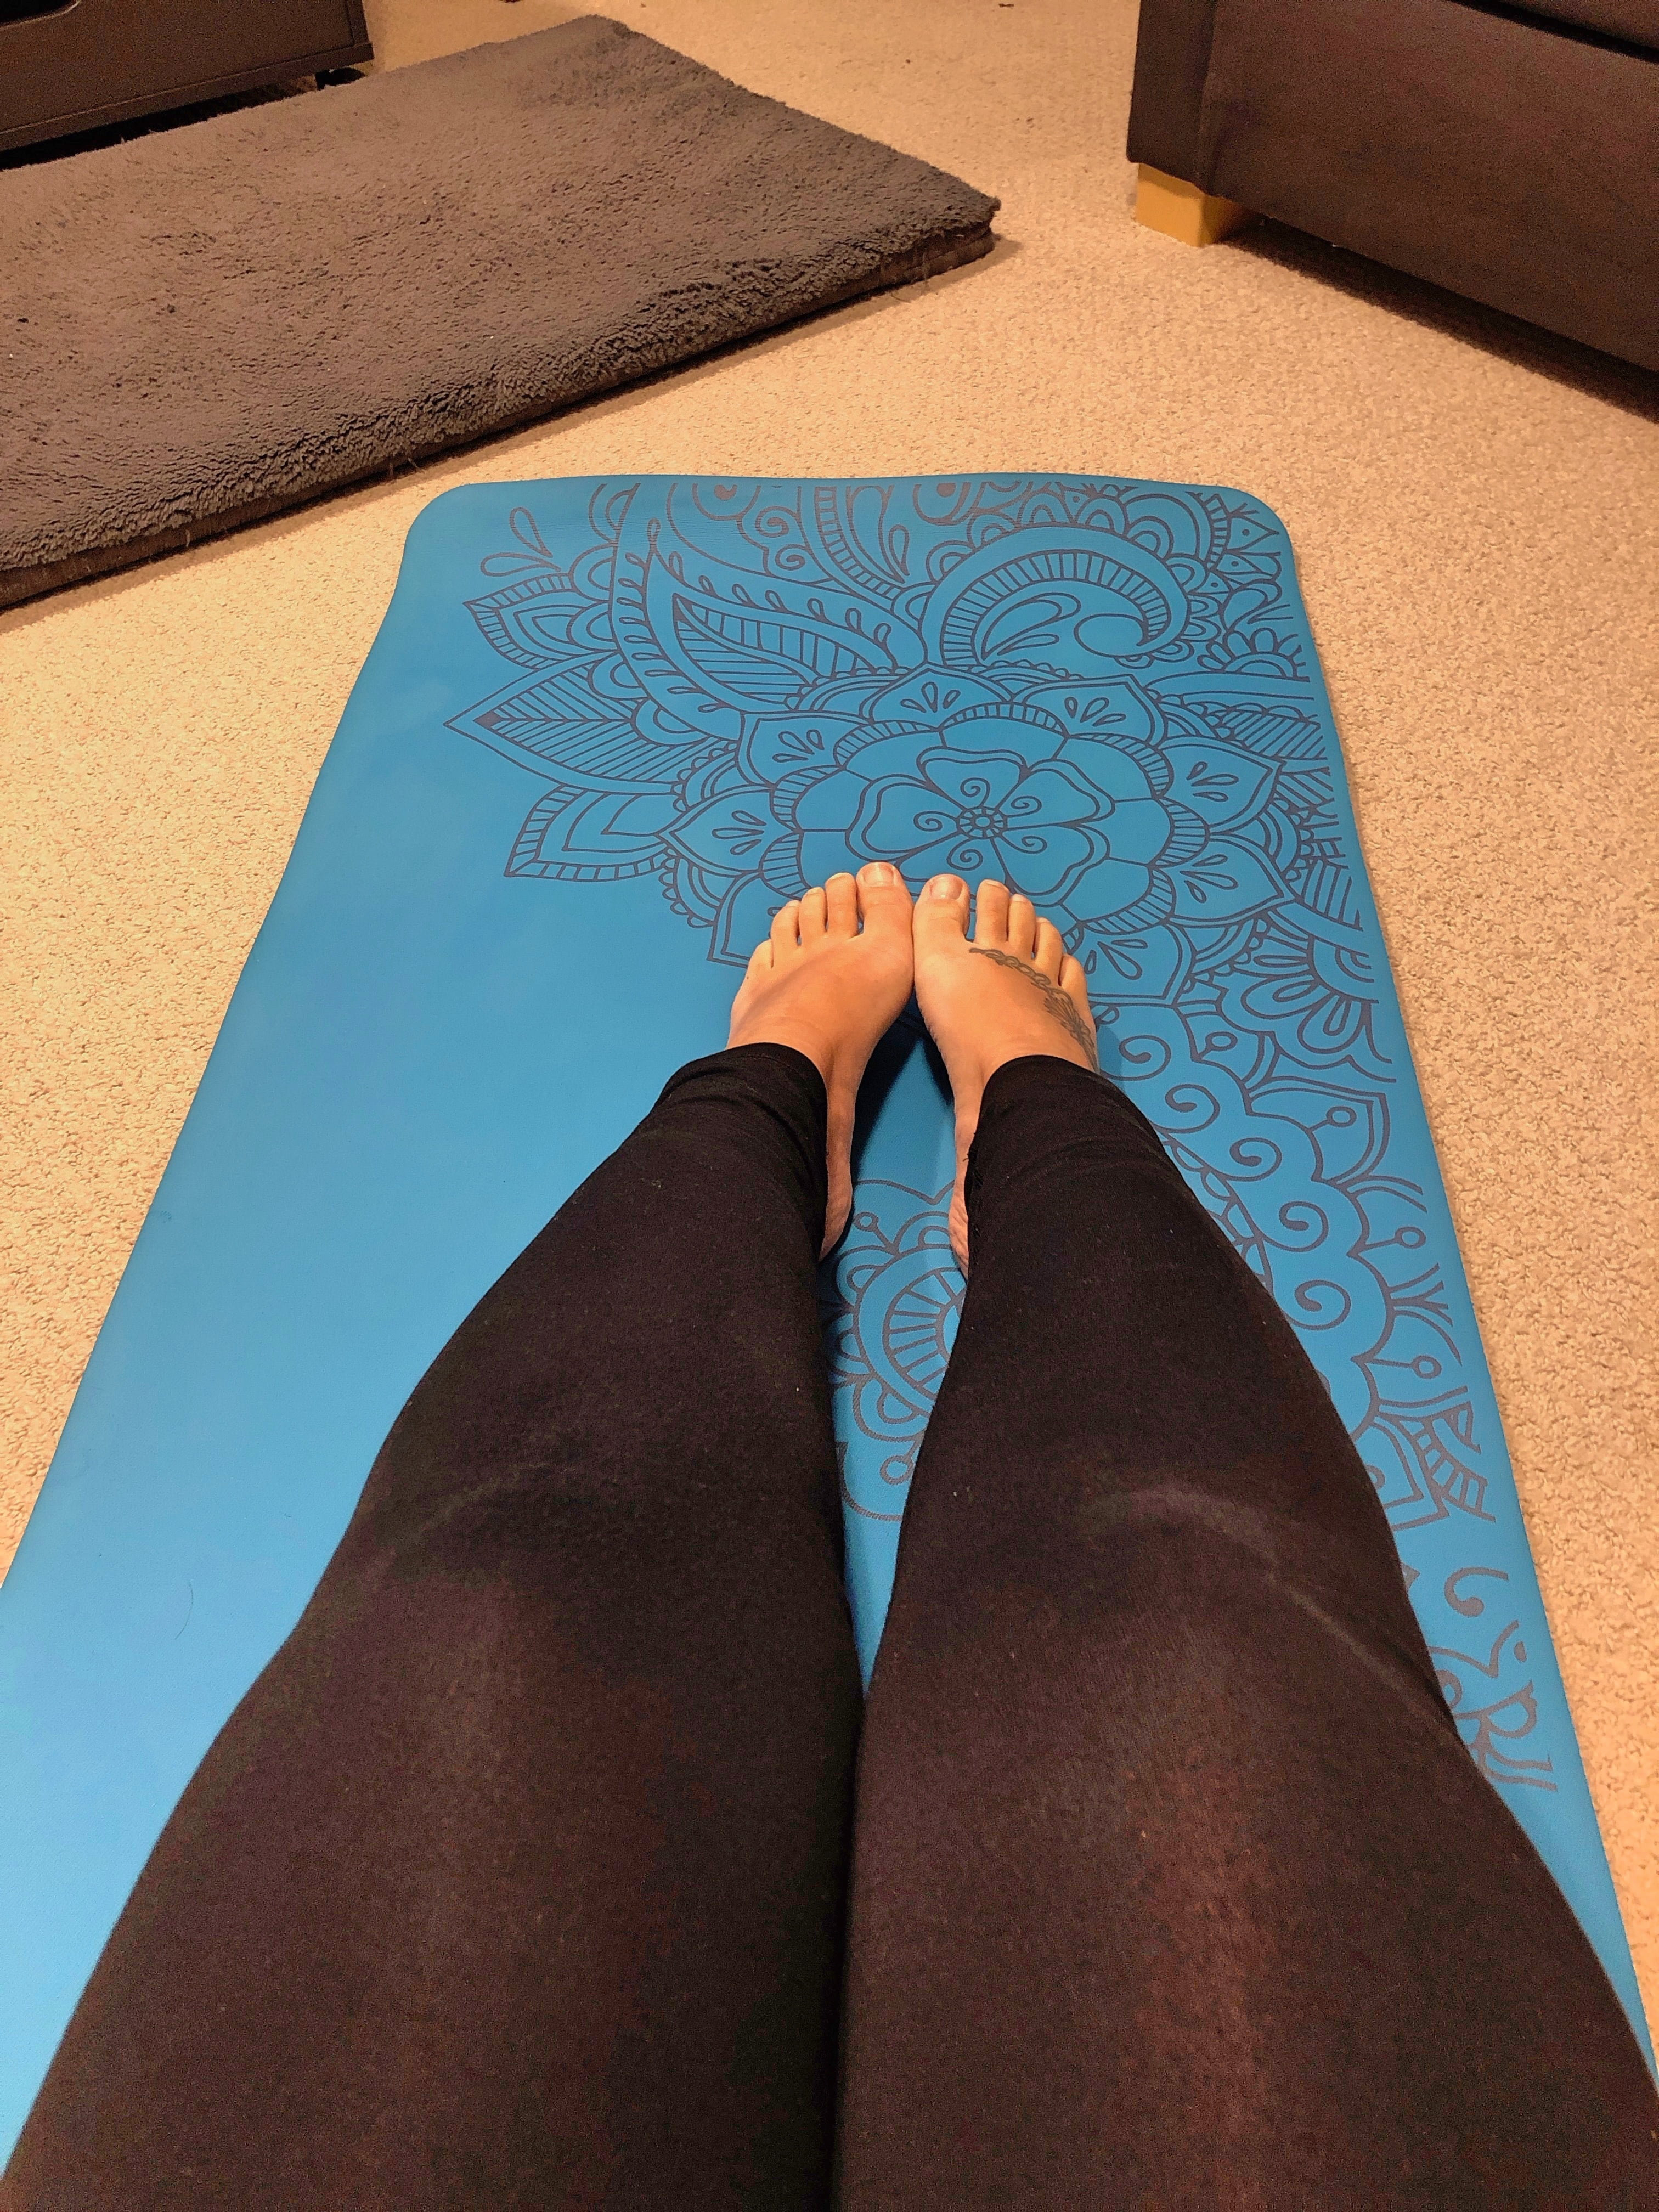 Yoga Mat and Woman's Legs